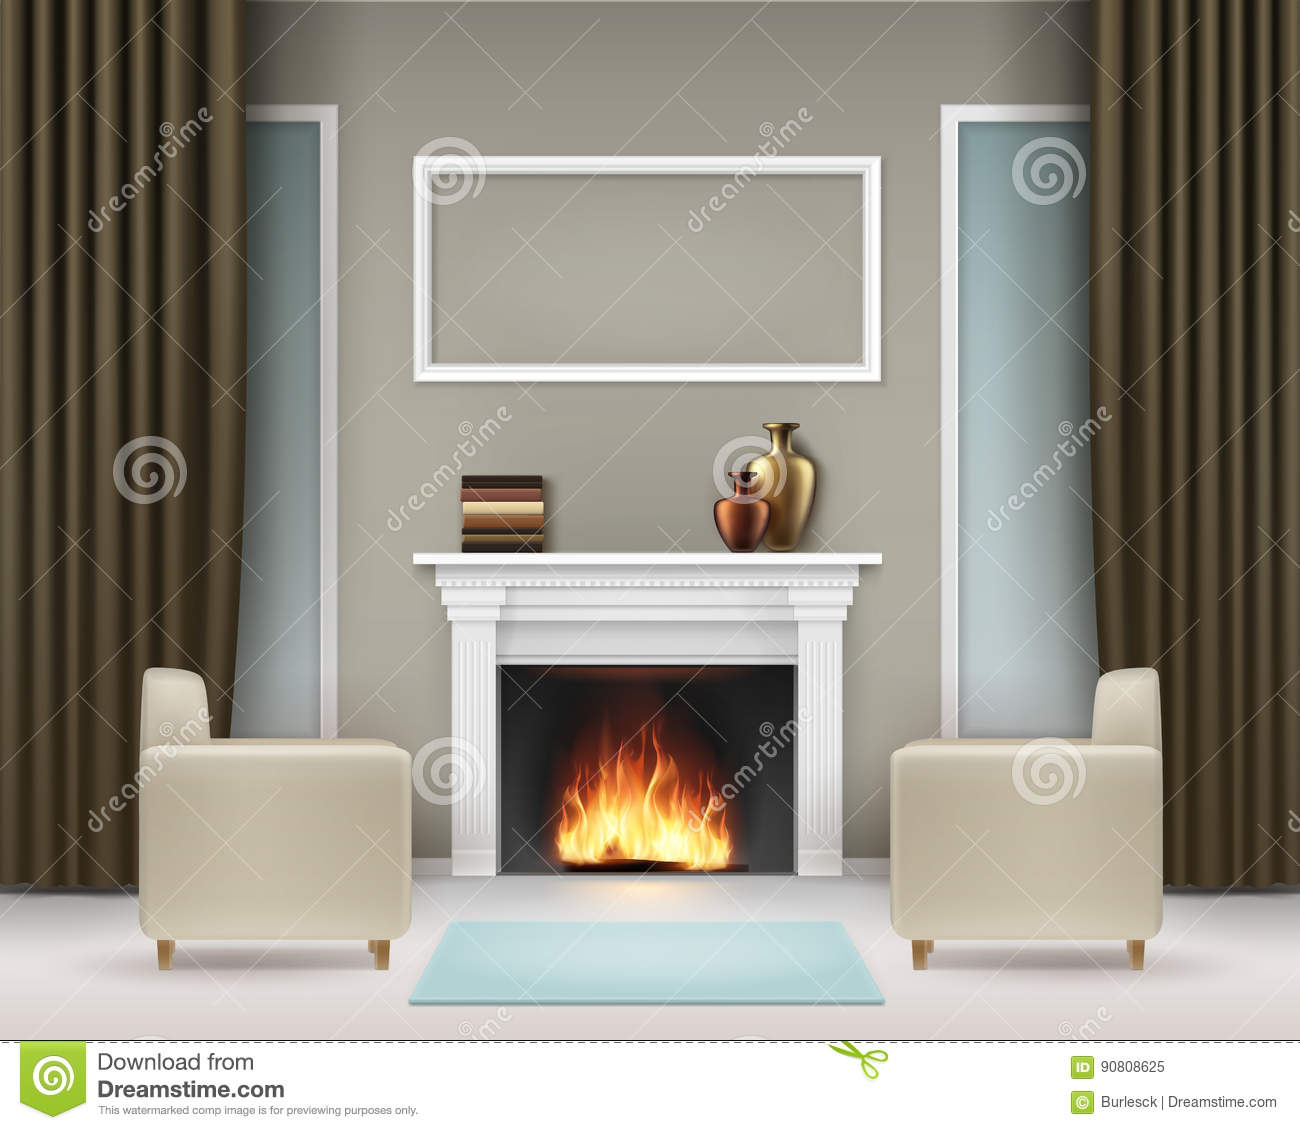 Picture of: Interior With Fireplace Stock Vector Illustration Of Brown 90808625